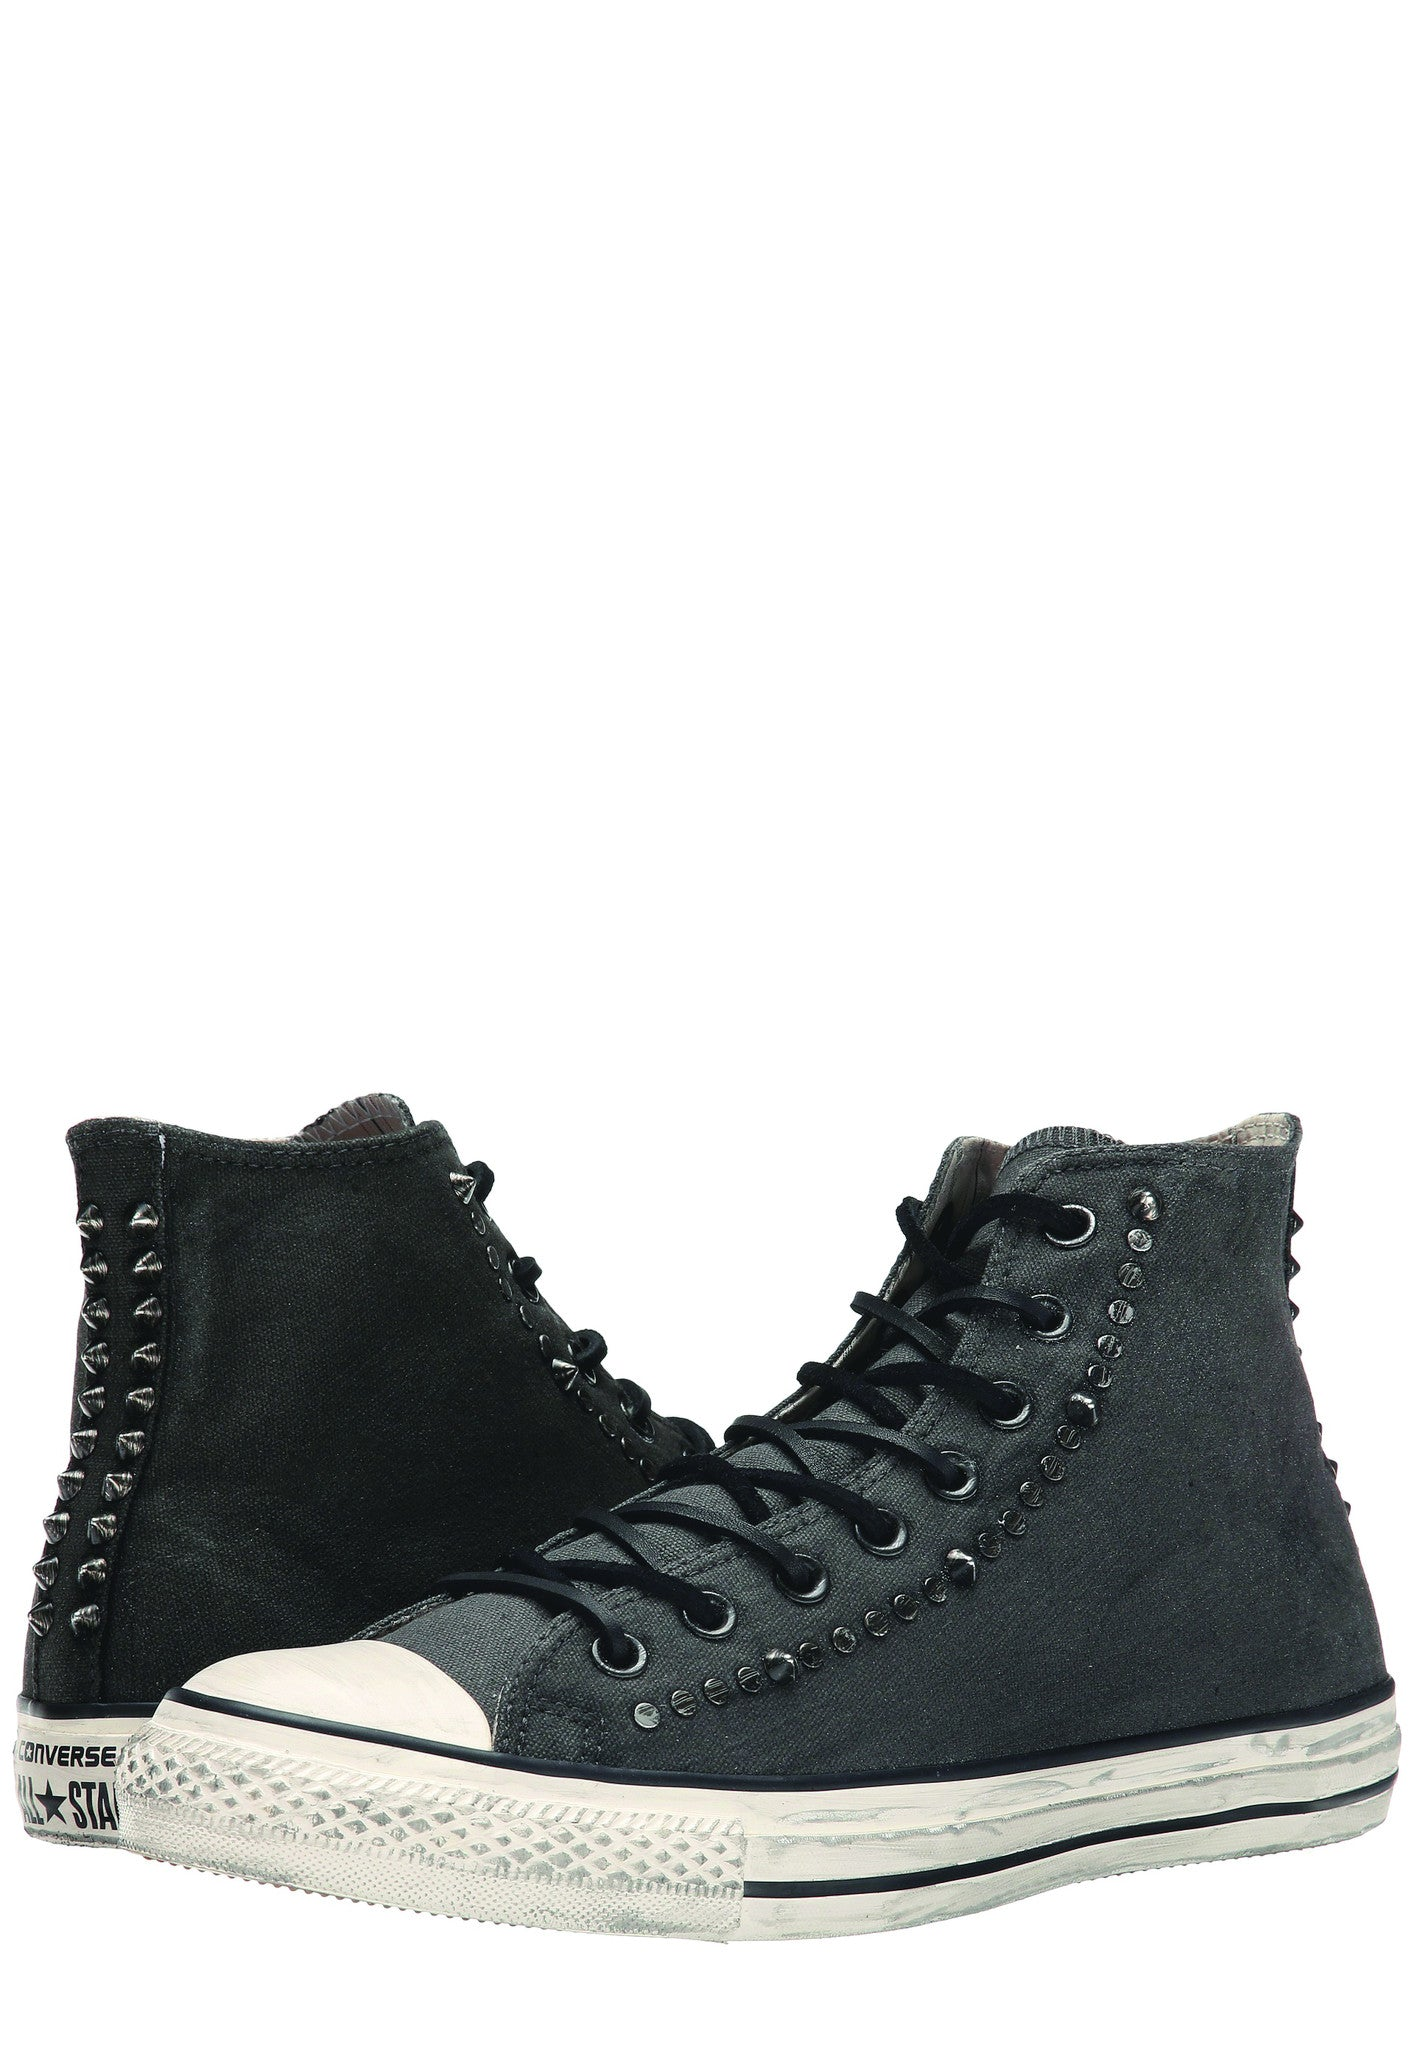 Converse by John Varvatos Painted Hardware Chuck Taylor All-Star Hi Top Canvas in Black 145387C